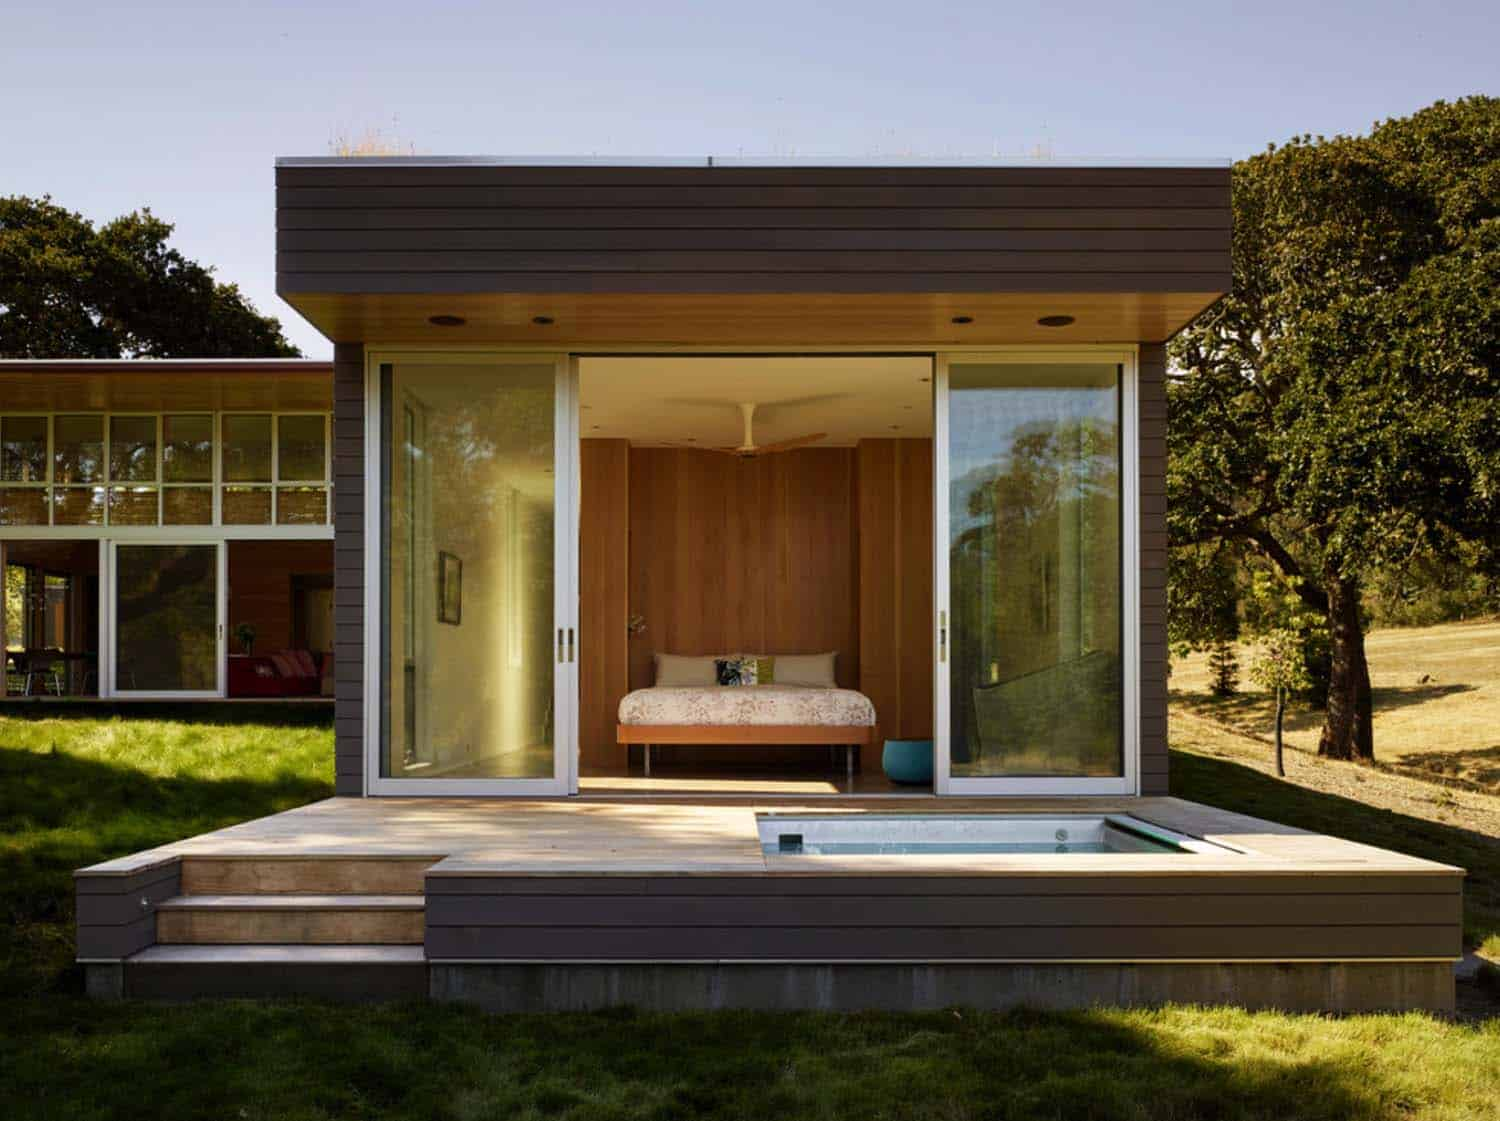 contemporary-house-design-turnbull-griffin-haesloop-11-1-kindesign